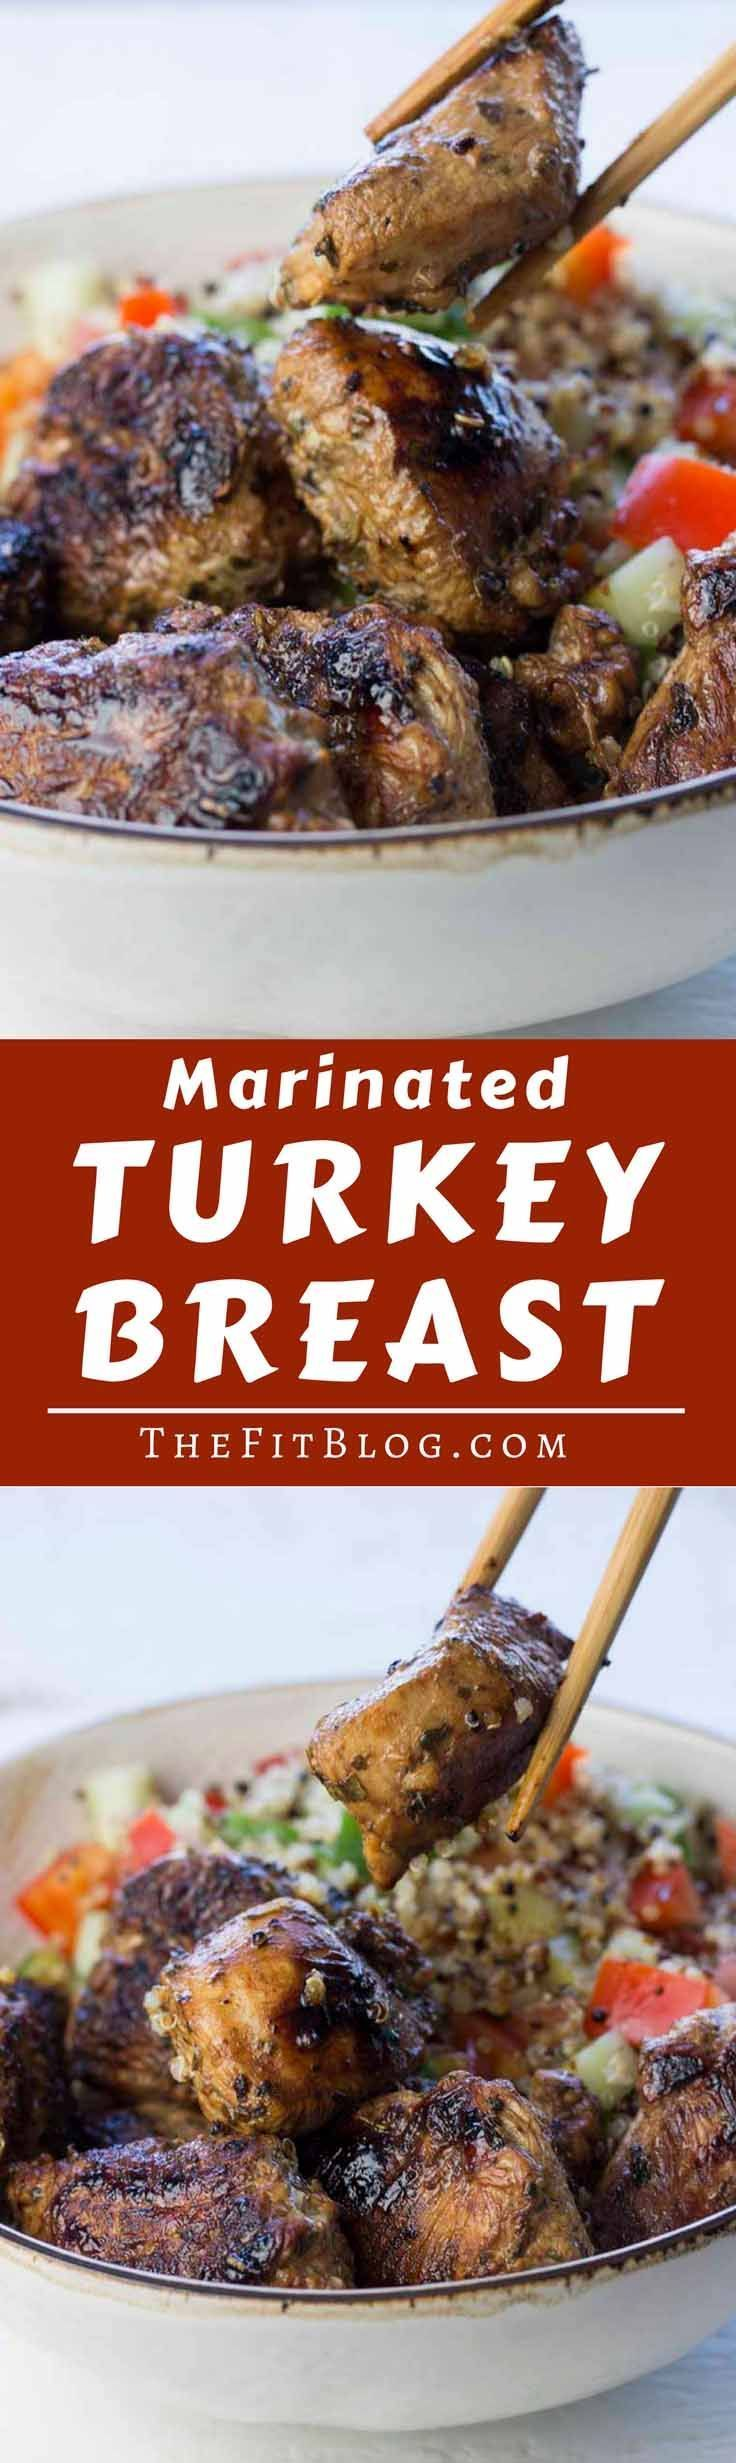 The best marinated turkey breast! This marinade is what takes turkey breast from being slightly boring to being absolutely delicious!   high protein   low carb   sugar free   gluten free   diabetes friendly   Paleo   via @TheFitBlog